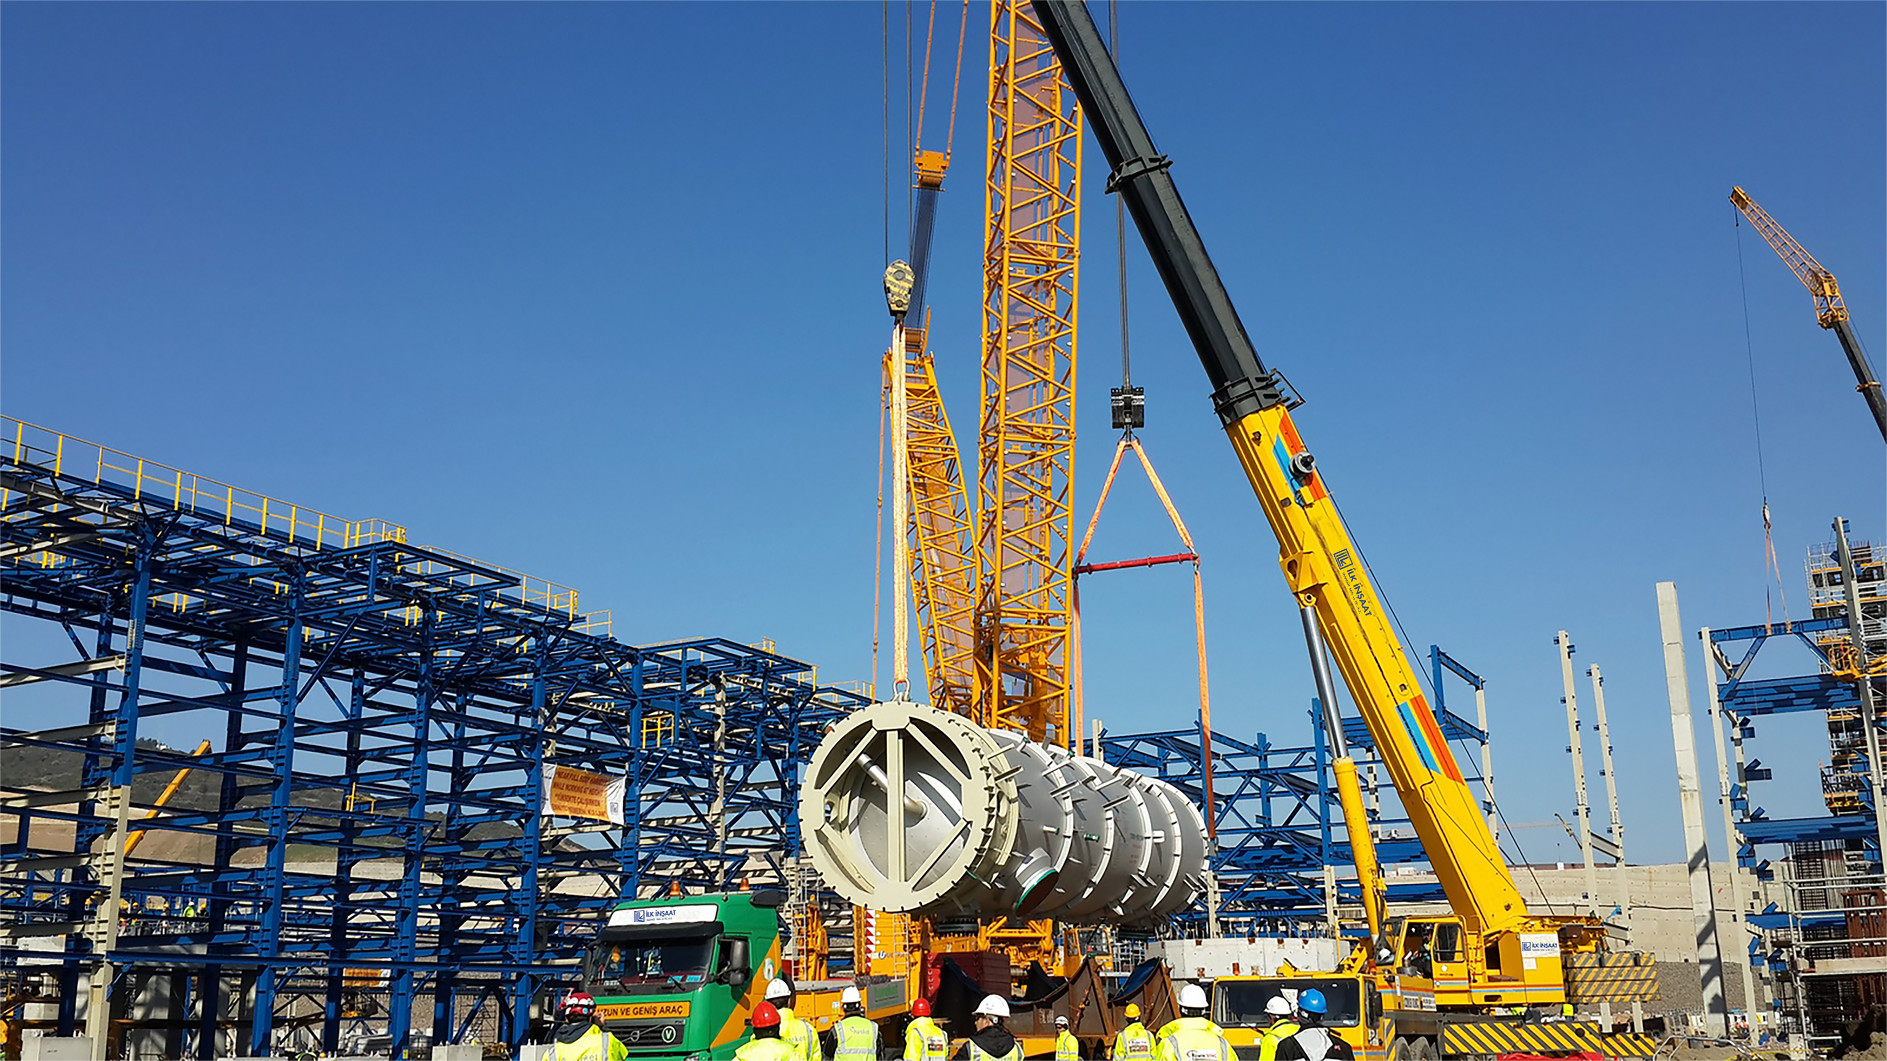 Piping, Pipe Support, NDT and PWHT, Equipment Erection, Refractory, Insulation, Painting, Electrical & Instrumentation of P1A, P2A and P2B areas of Socar Turkey Aegean Refinery.